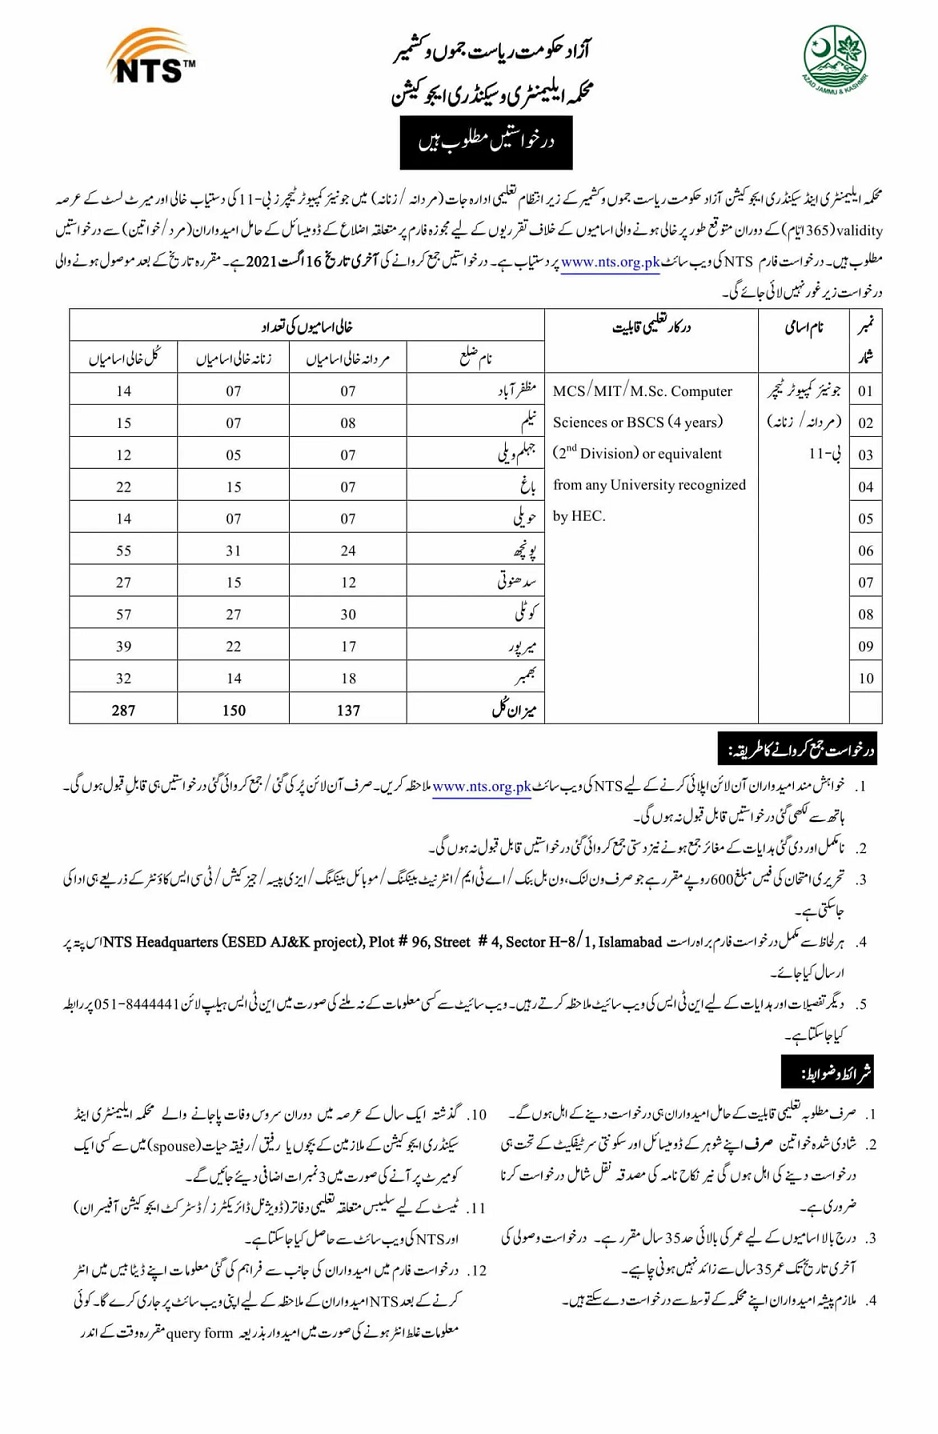 NTS New Jobs In AJK Elementary and Secondary Education Department Azad Jammu & Kasmir